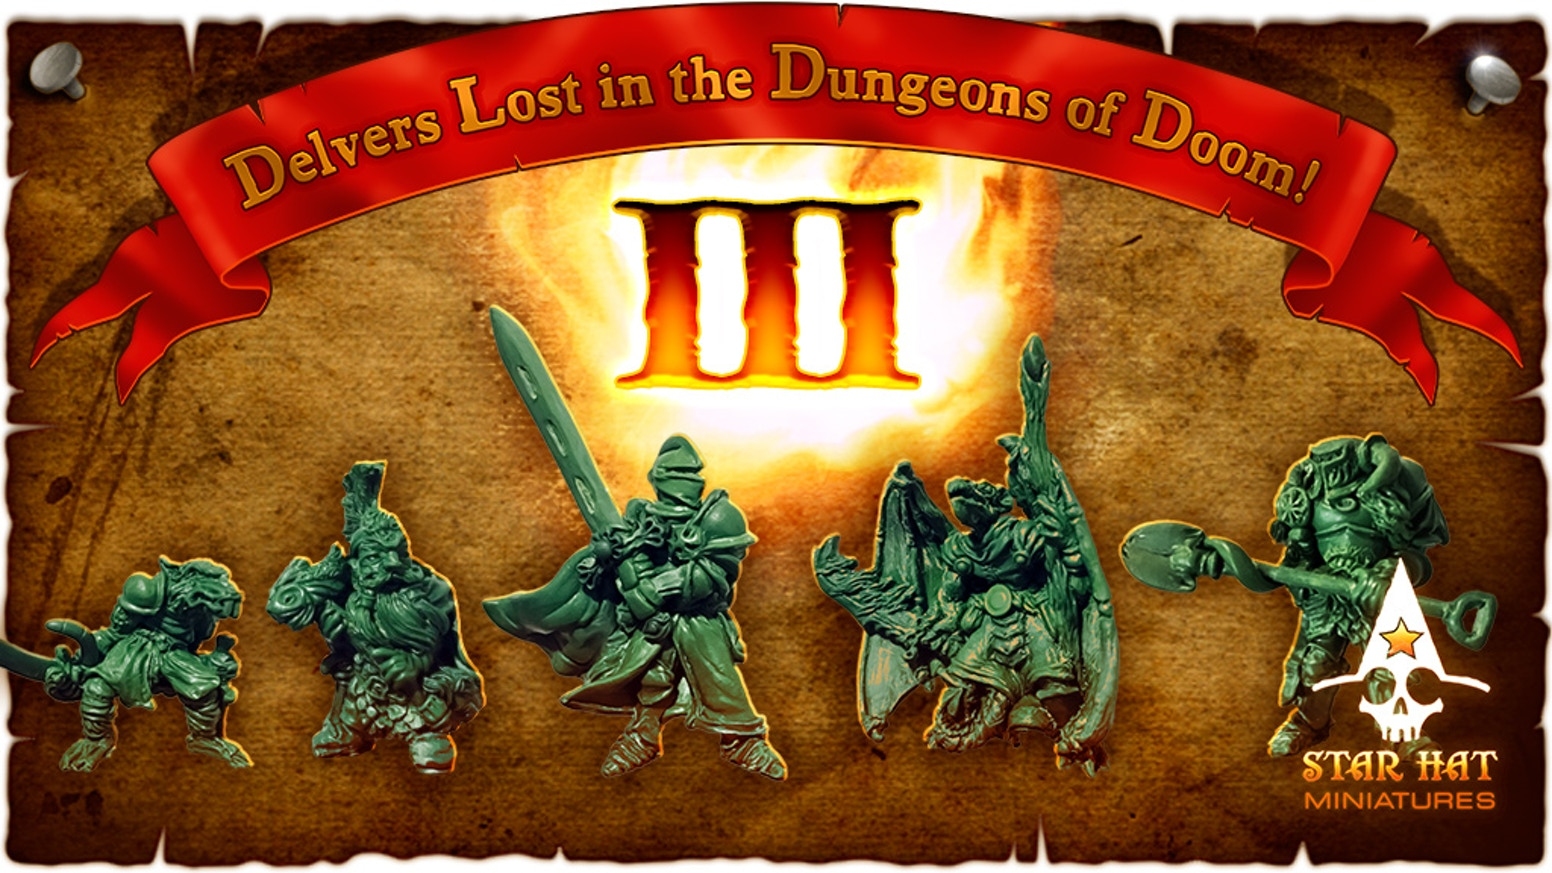 Delvers Lost in the Dungeons of Doom 3: Heroic scale fantasy miniatures sculpted by hand and cast in metal for RPGs and Tabletop Games.